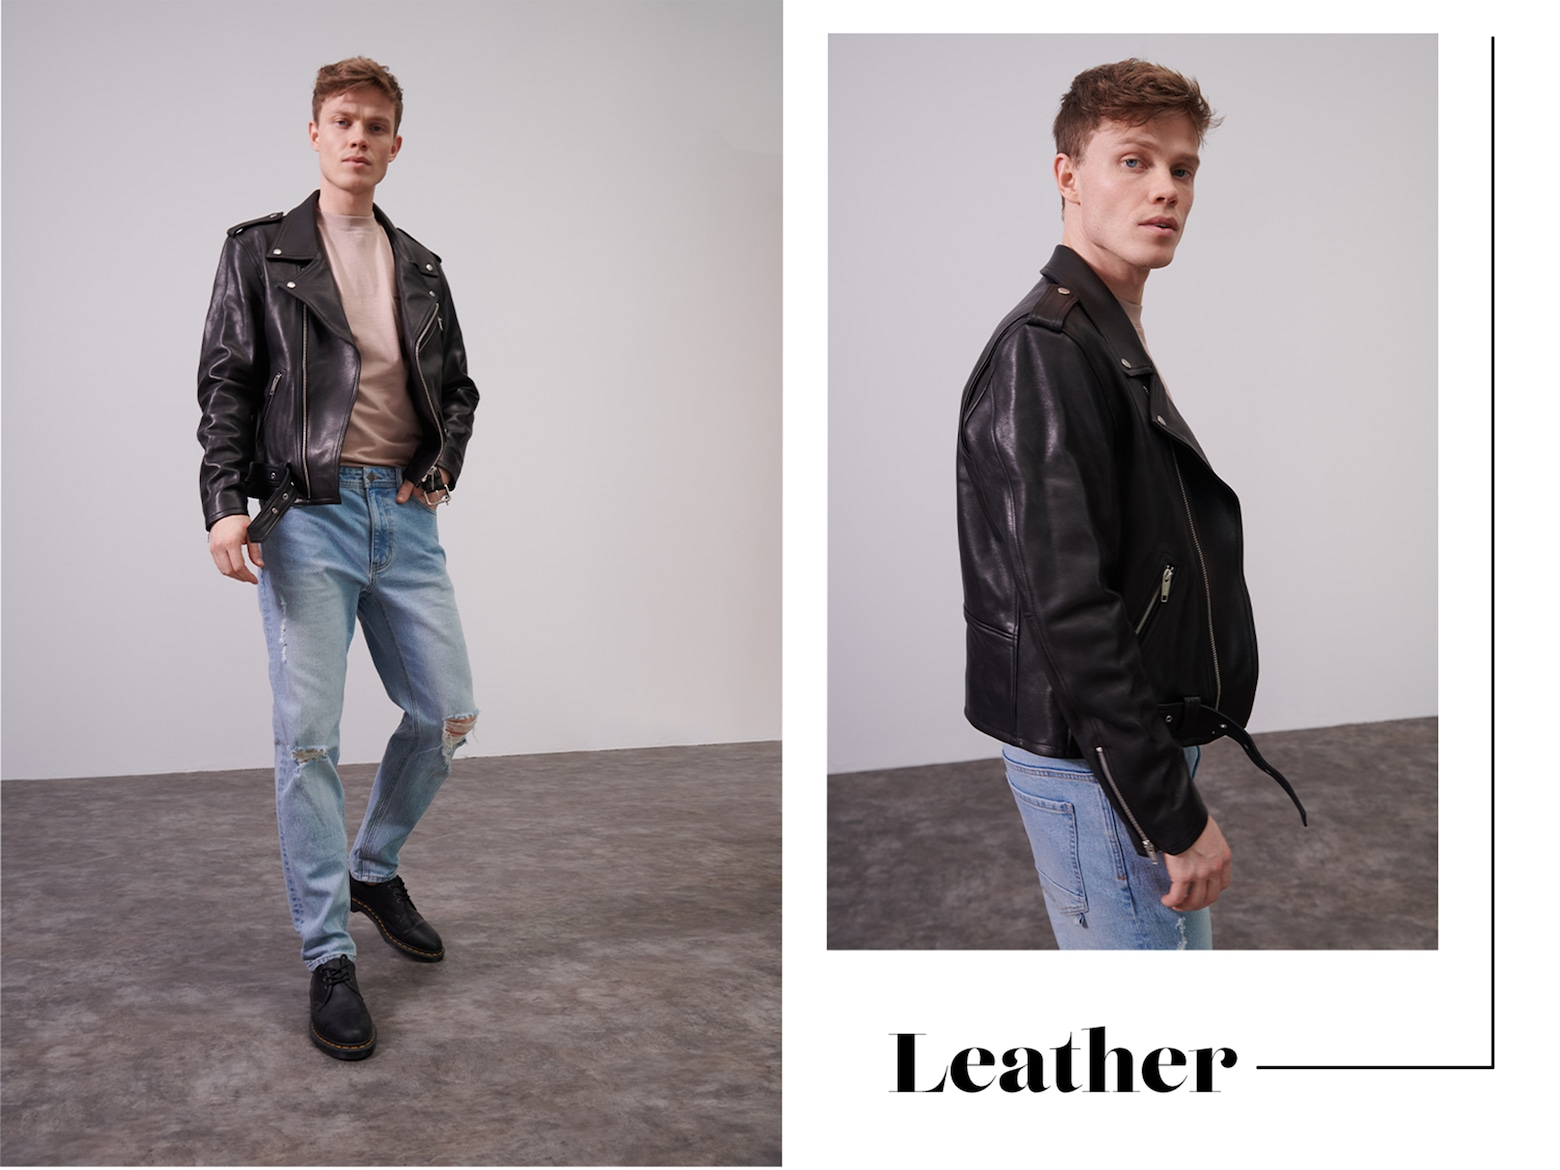 Matthias  - Cool Leather Outfit